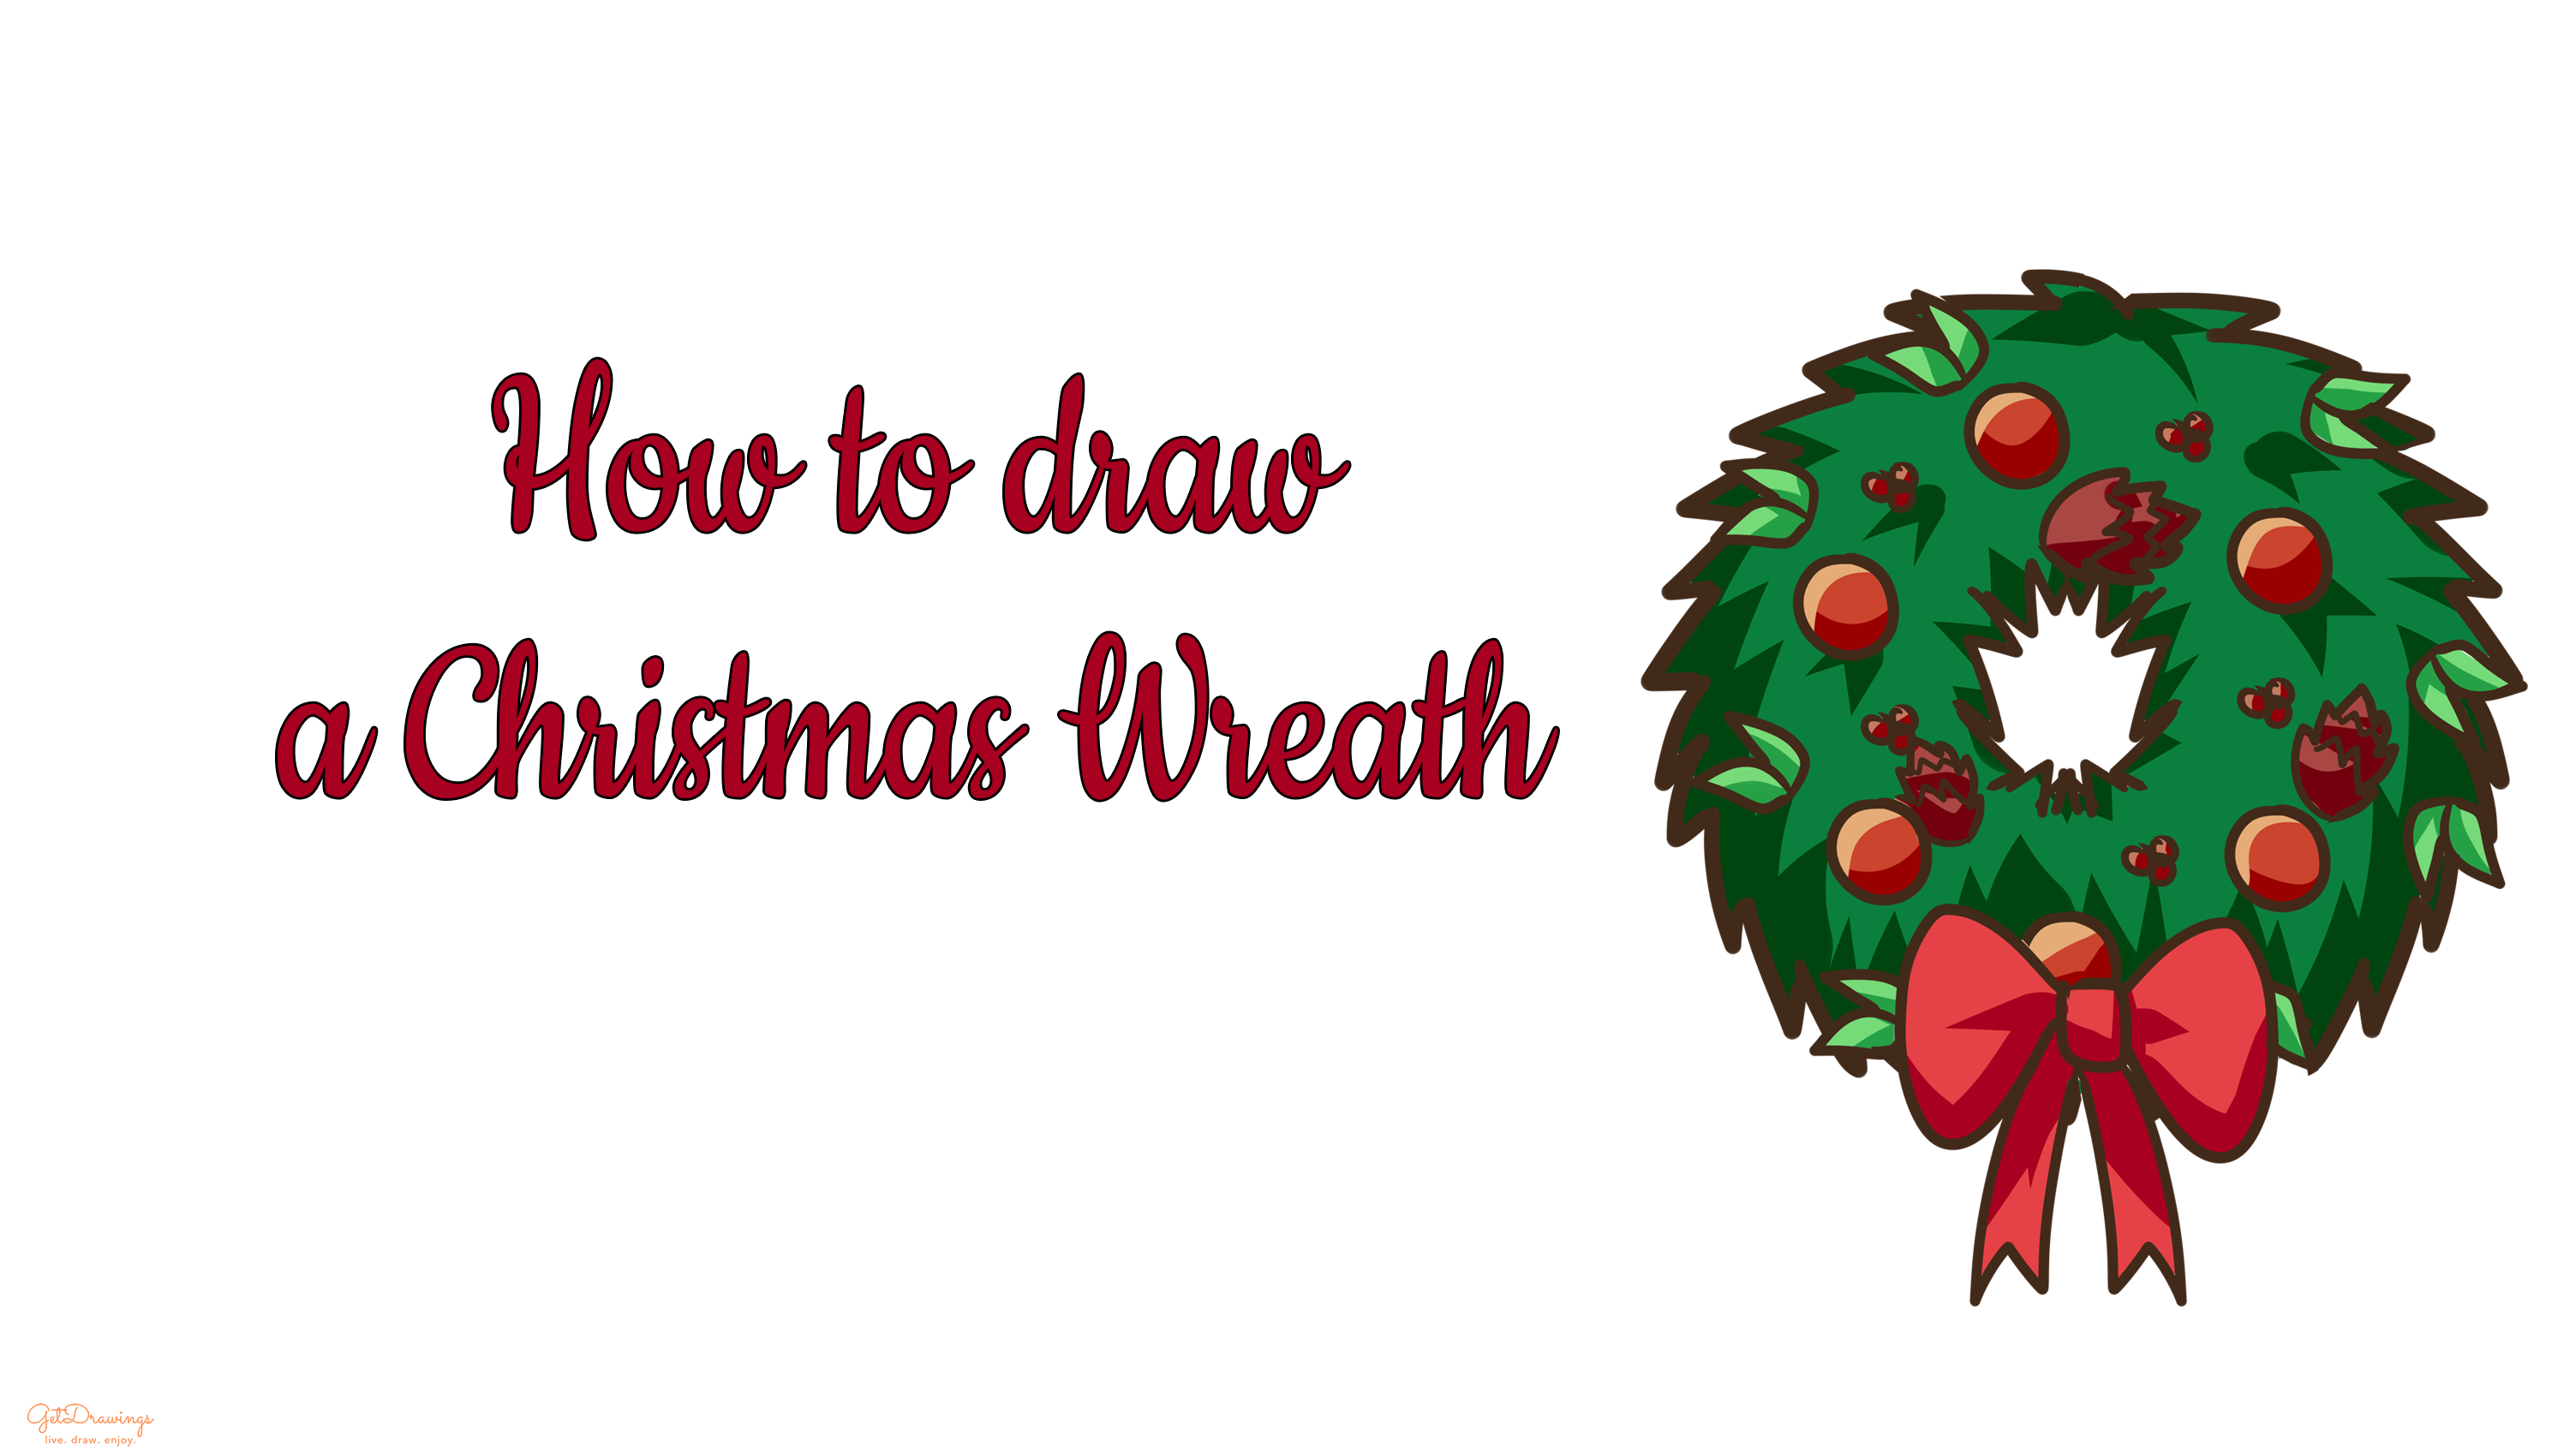 How to draw a Christmas Wreath